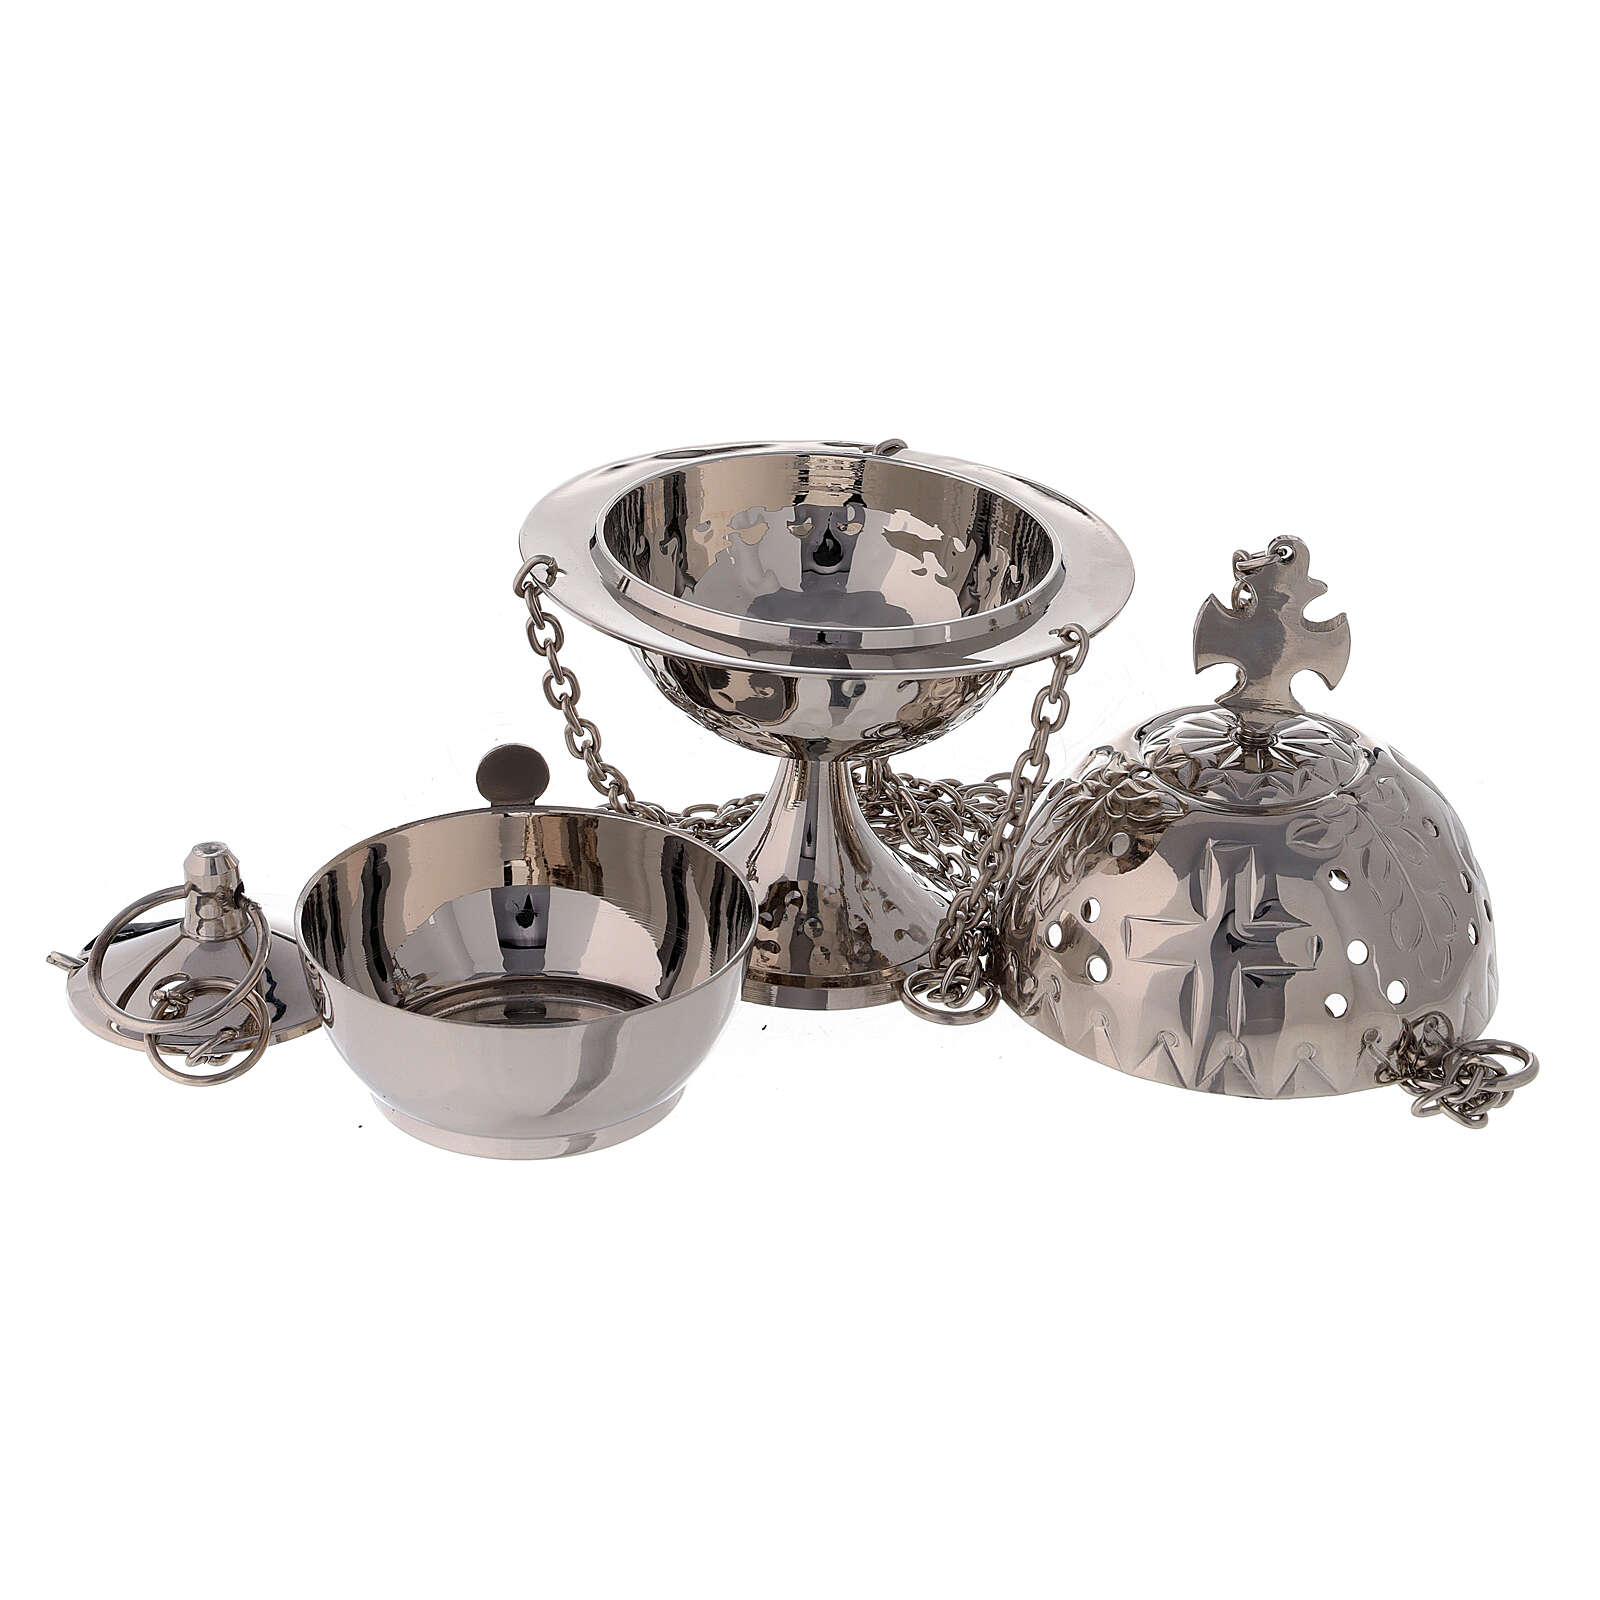 Round thurible with triangular decorations 6 1/4 in nickel-plated brass 3